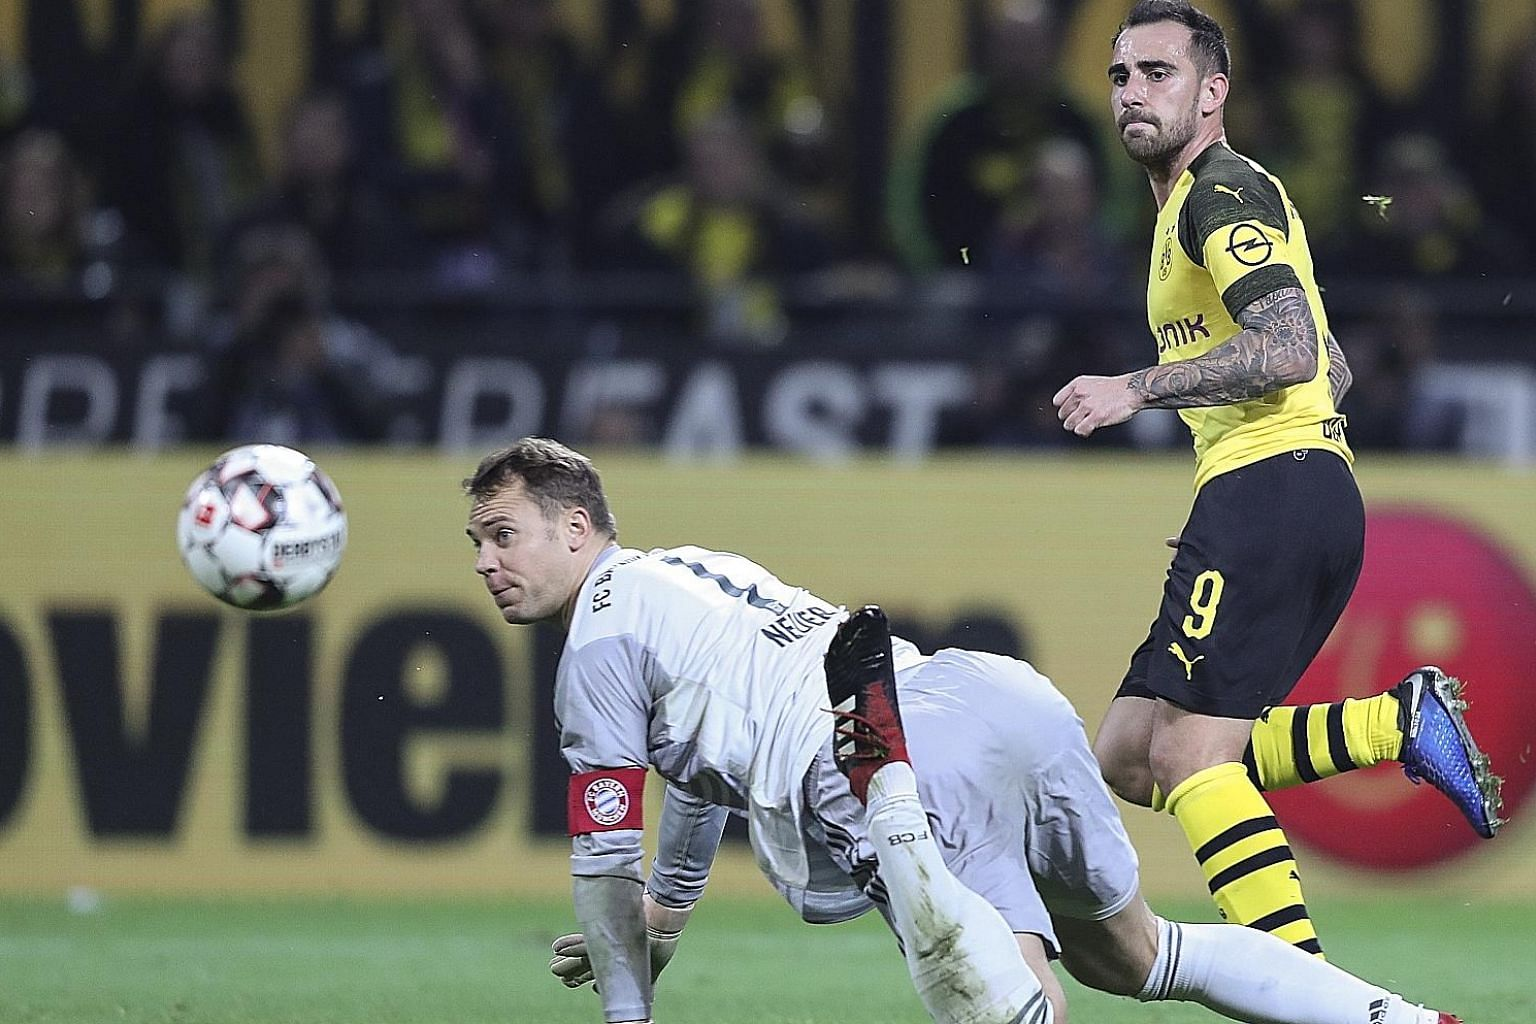 Paco Alcacer beating Manuel Neuer to score Dortmund's winner in their 3-2 home victory over Bayern on Saturday, ending the visitors' six-match unbeaten run.